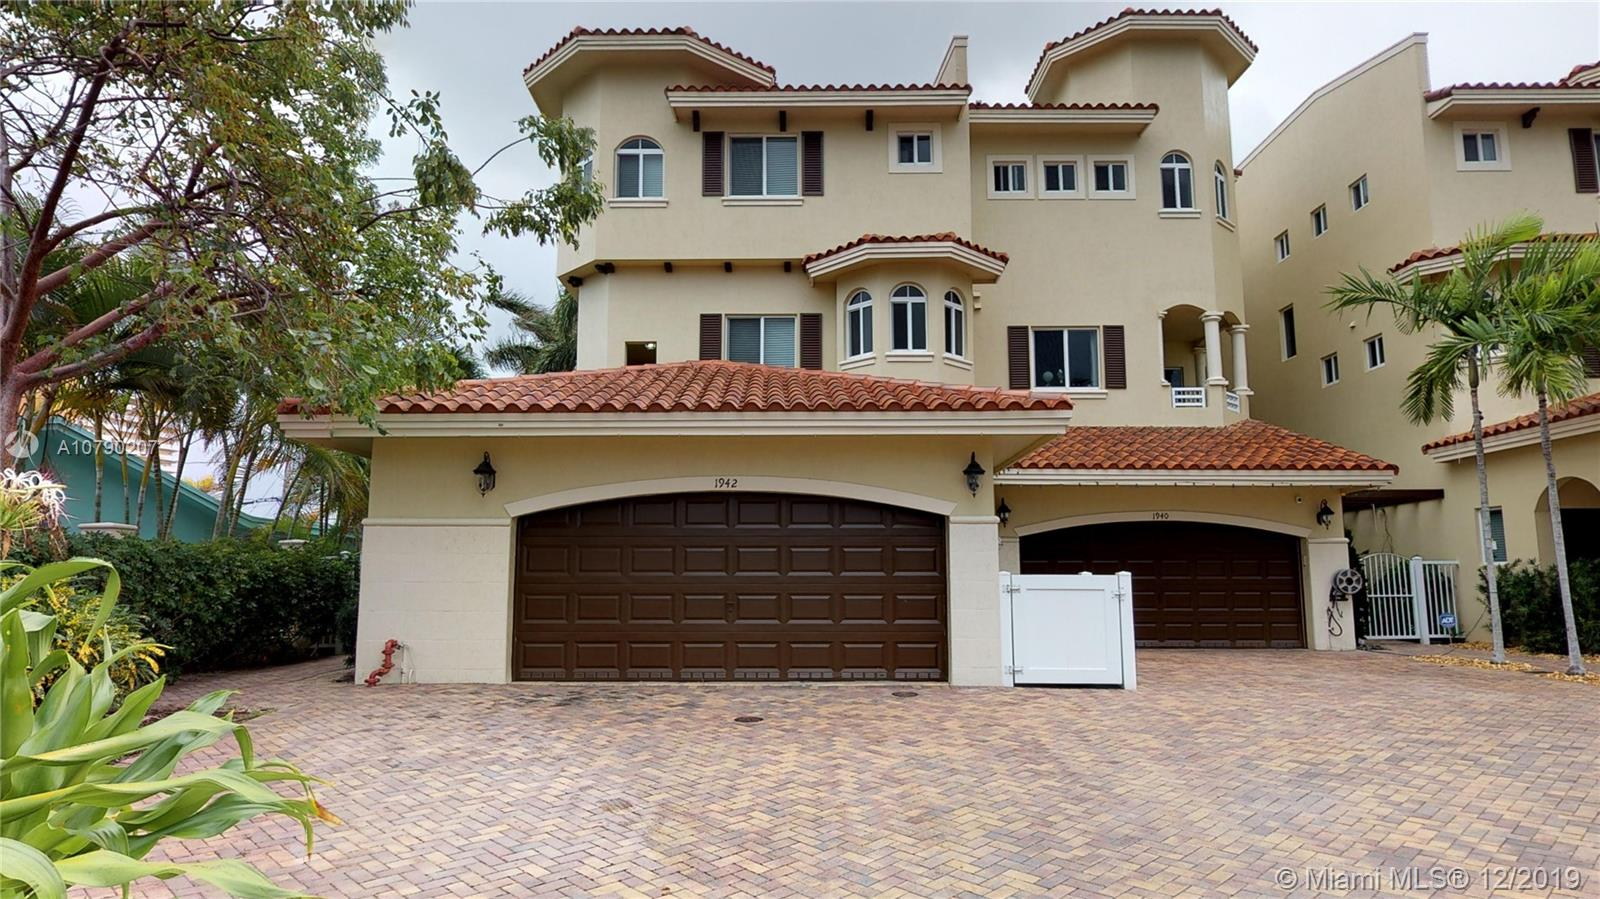 Townhome located in a beautiful community, walking distance to the beach. 3 bedrooms 4 full bathrooms, (1 full bath on the first level).Kitchen with granite countertop and stainless steel appliances. A must see!!!